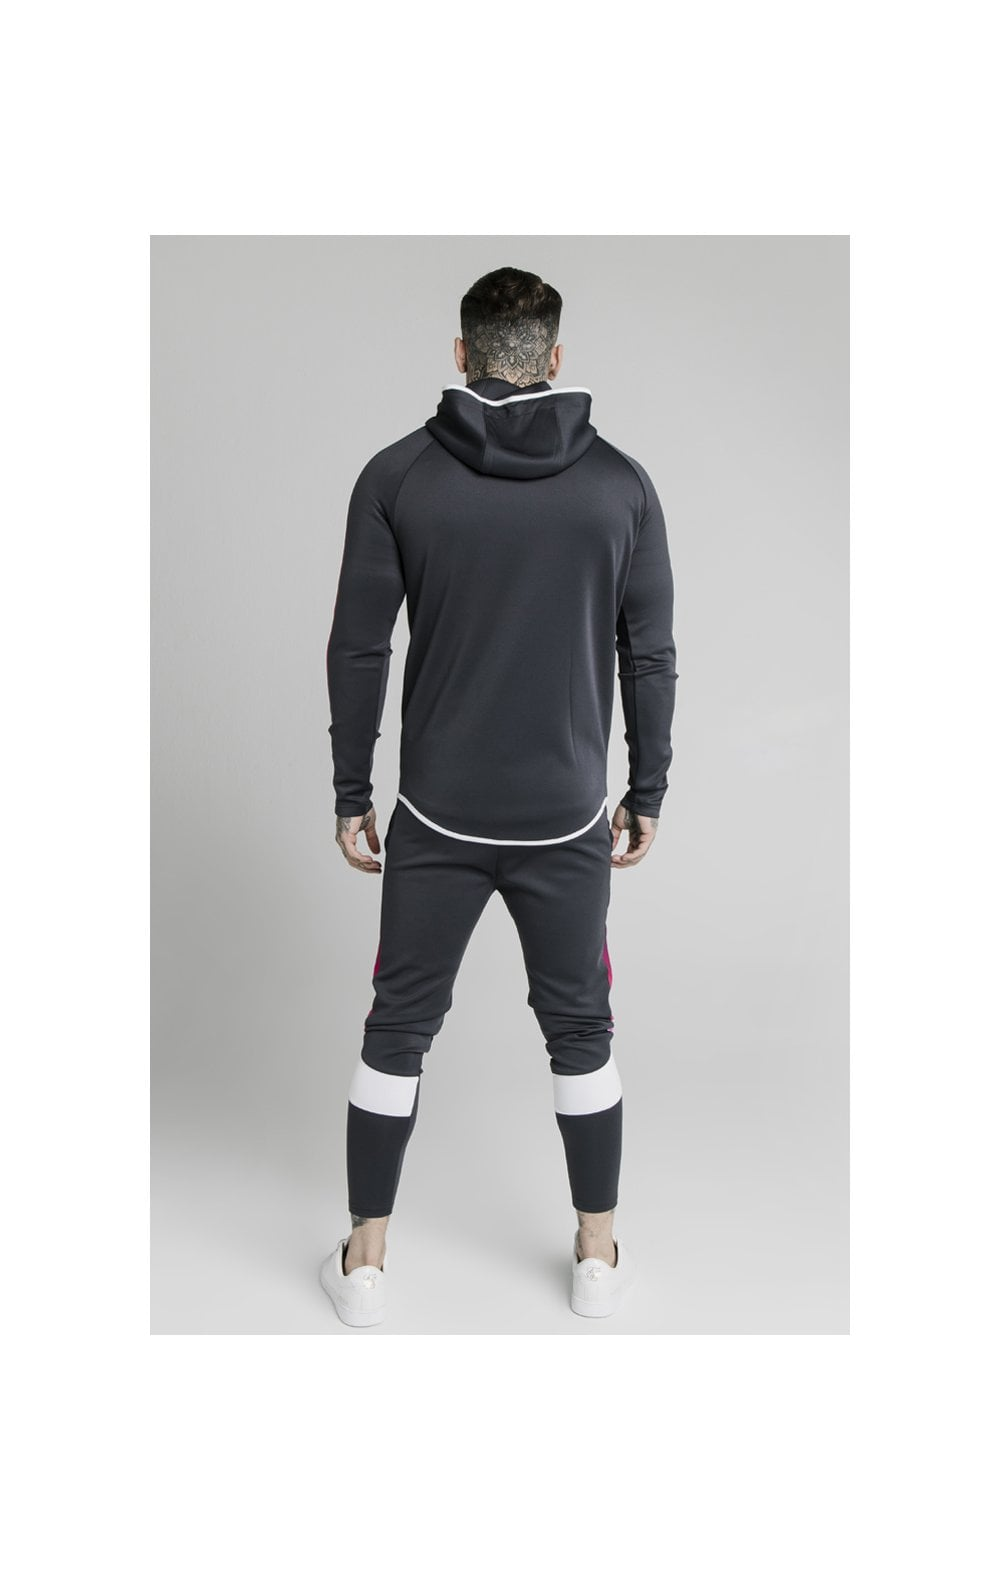 SikSilk Advanced Tech Zip Through Hoodie - Midnight Grey (4)